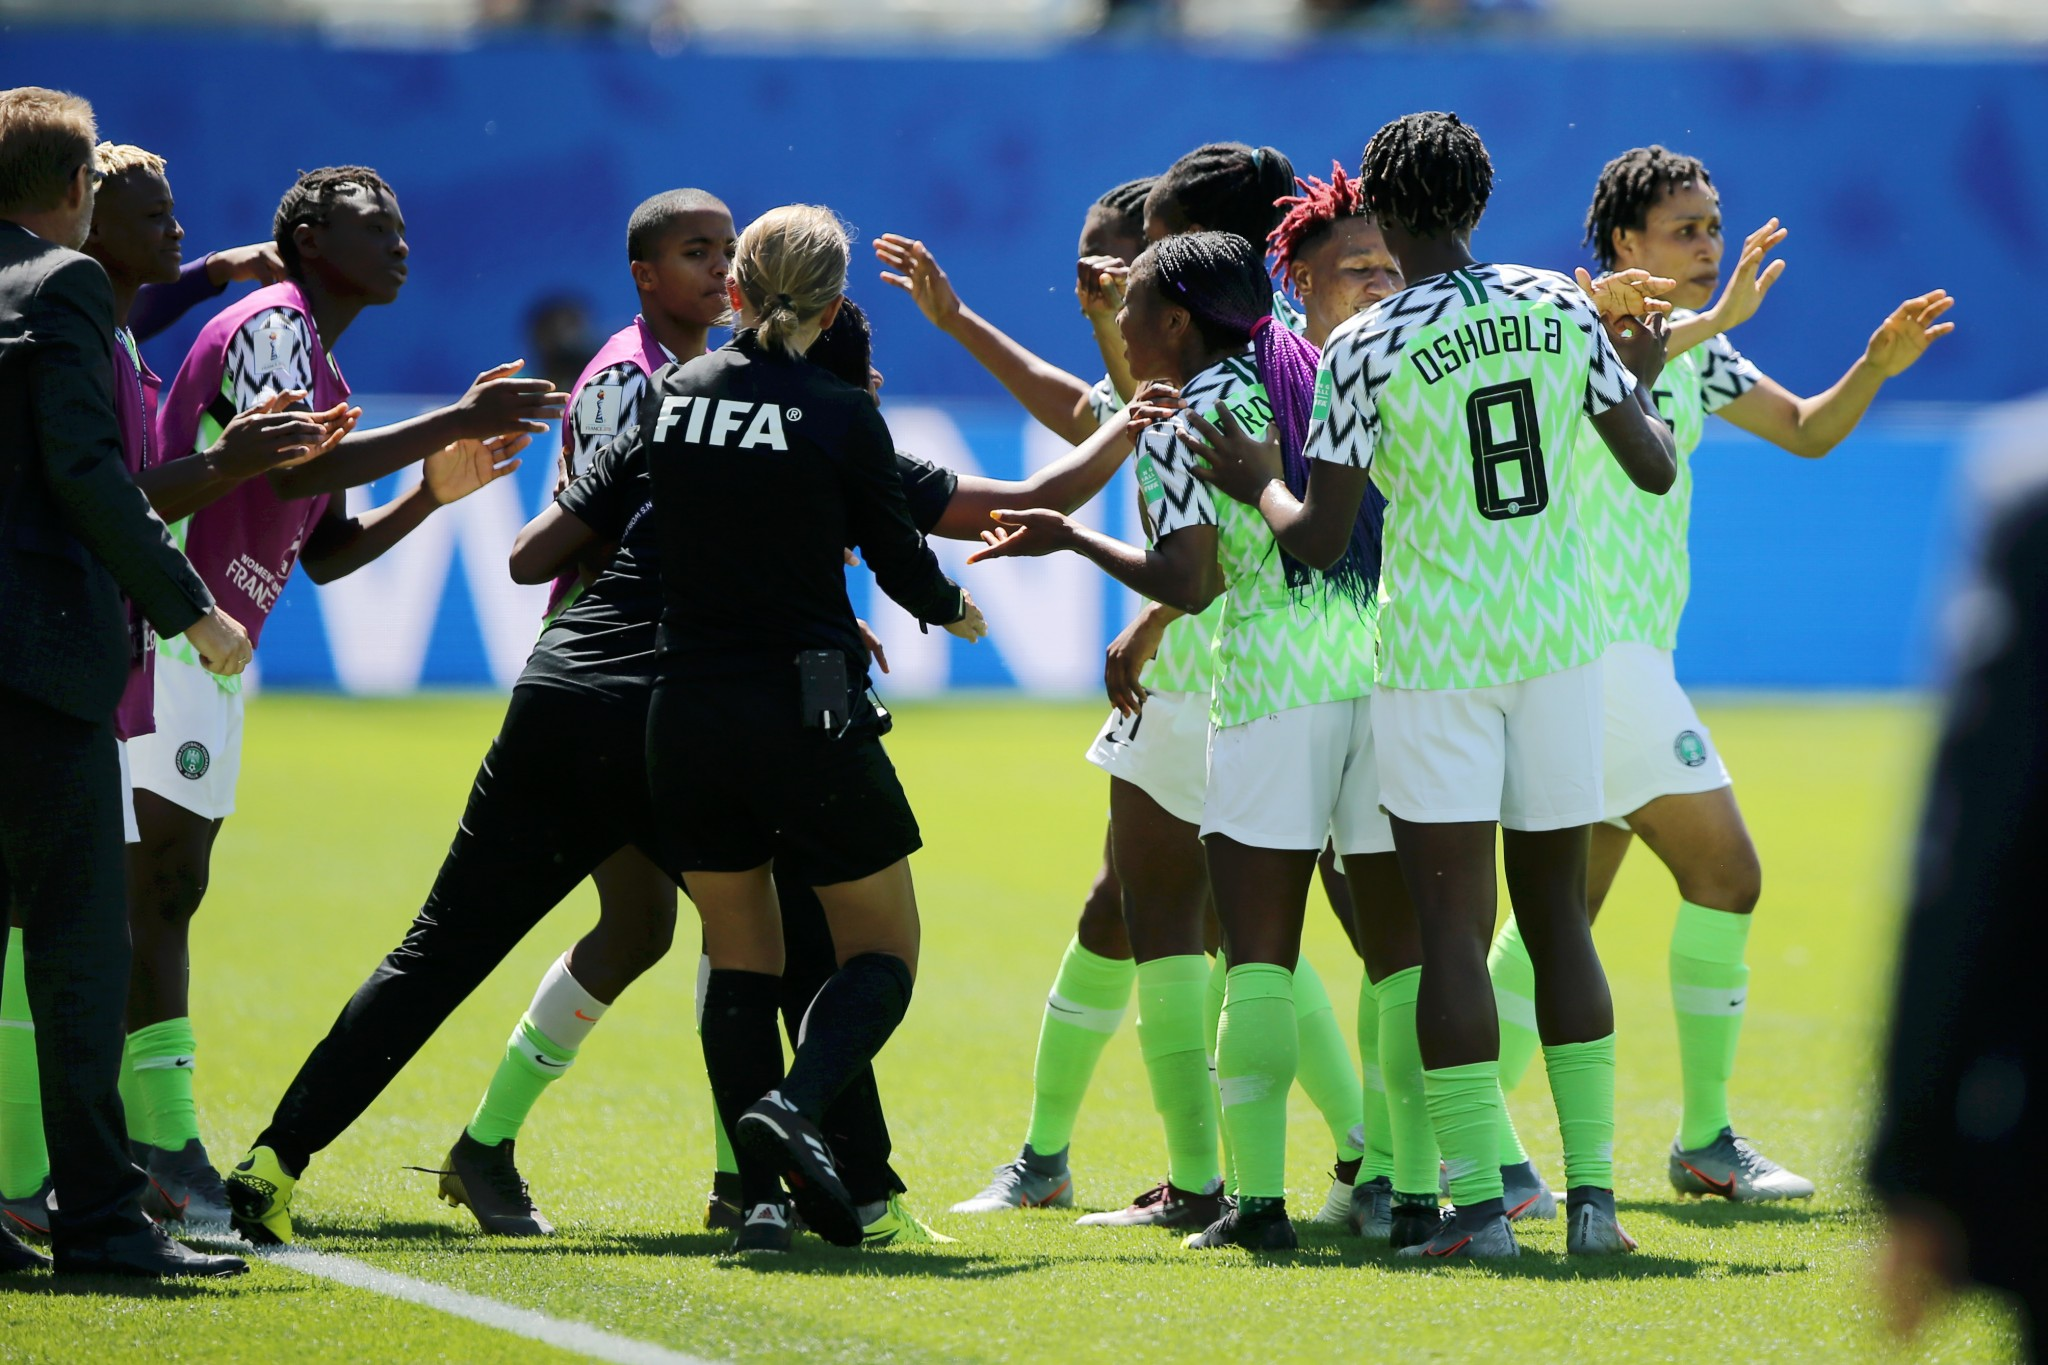 France 2019: Super Falcons to play Germany in Grenoble